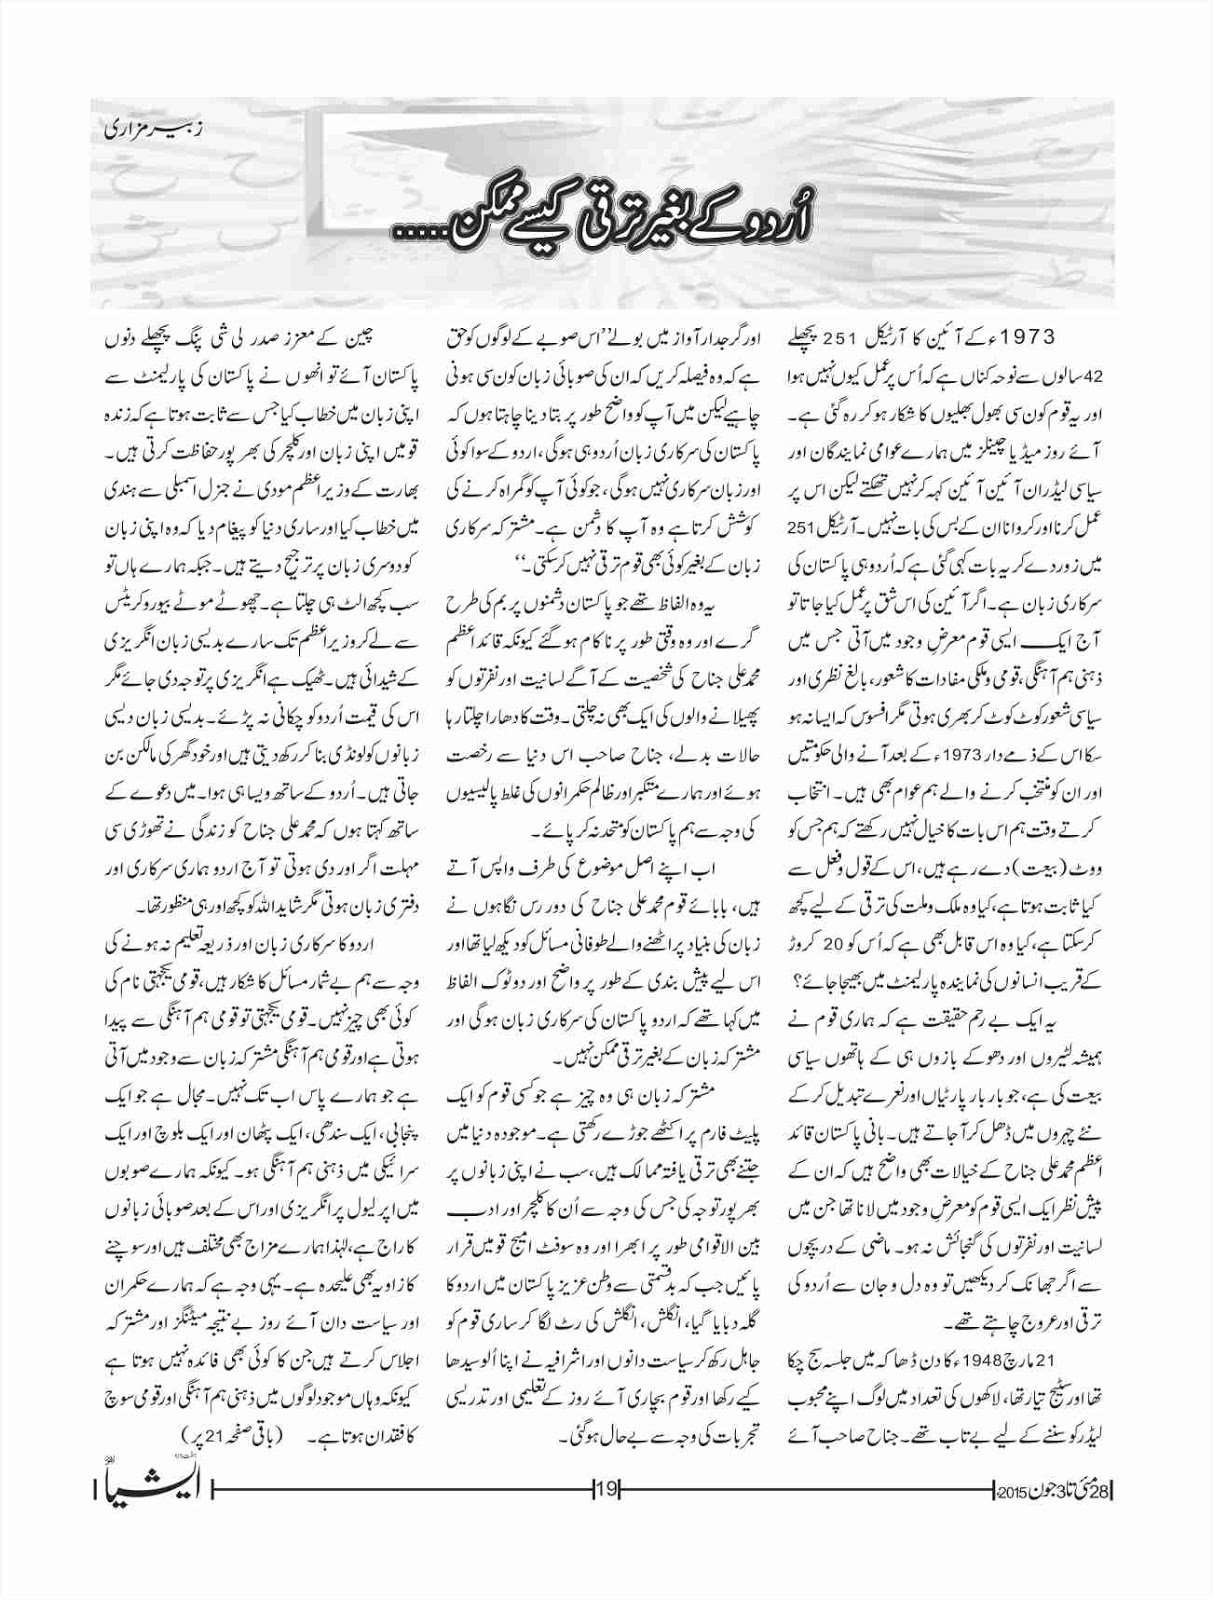 zubair hussain mazari urdu k baghair taraqi study zubair mazari s special essay on importance of urdu language